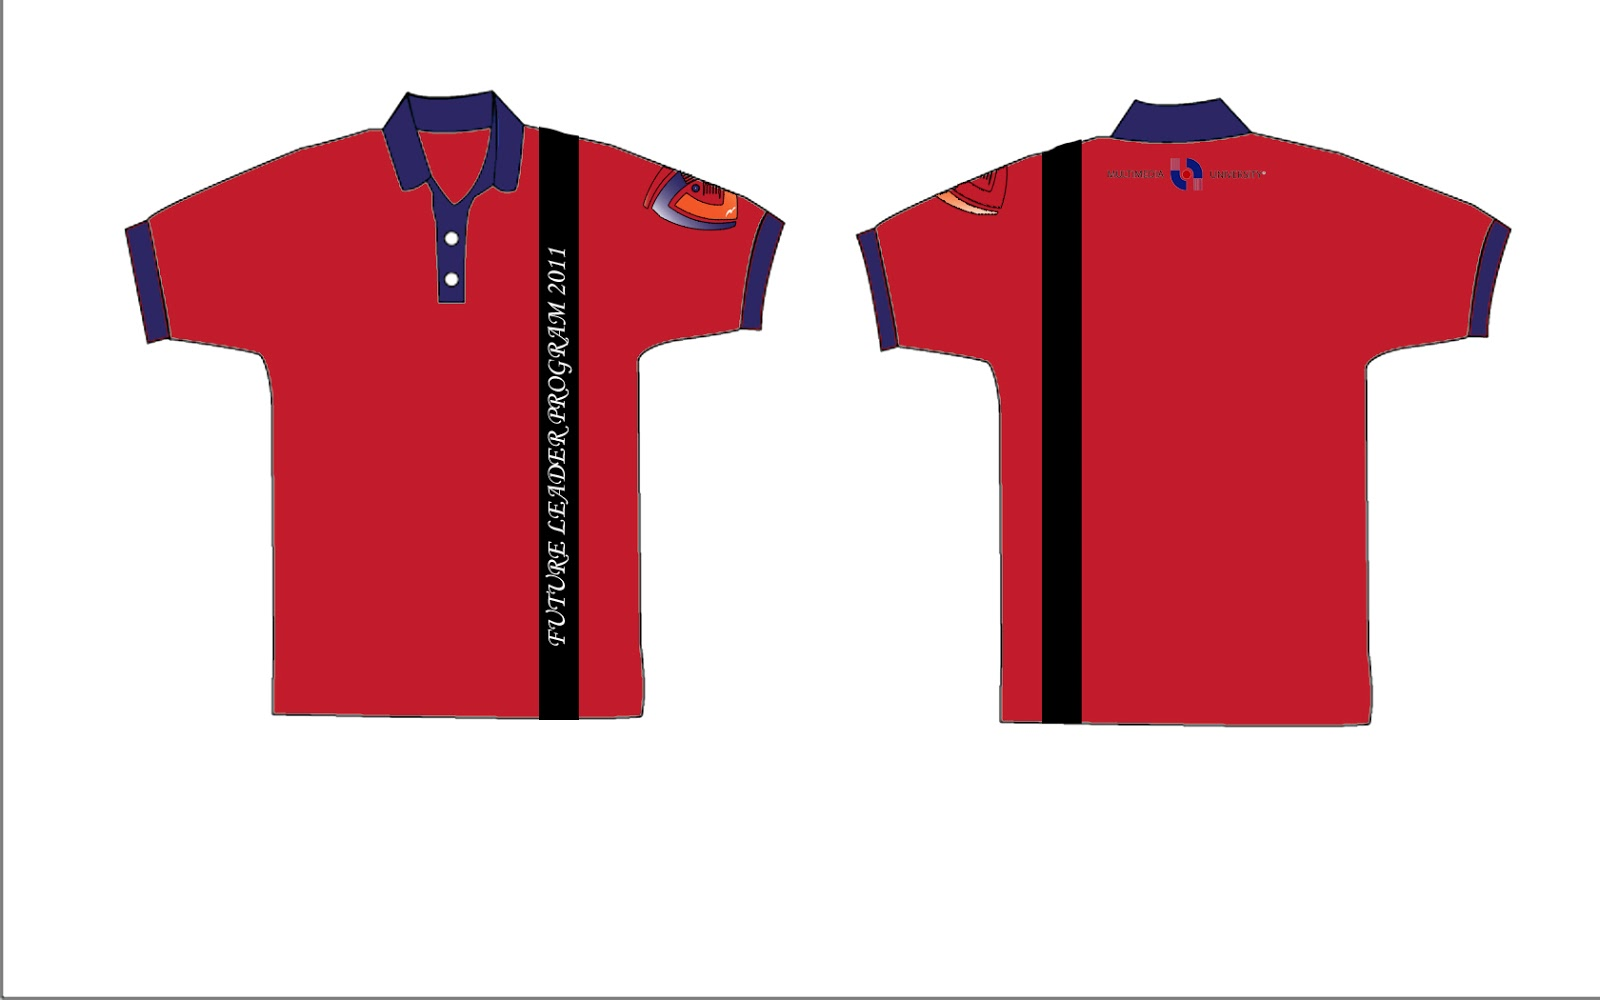 Design t shirt program - A Few Suggested T Shirt Design For Committee Of The Leadership Program Organized By Mmu Src And Also T Shirt Design For Upg